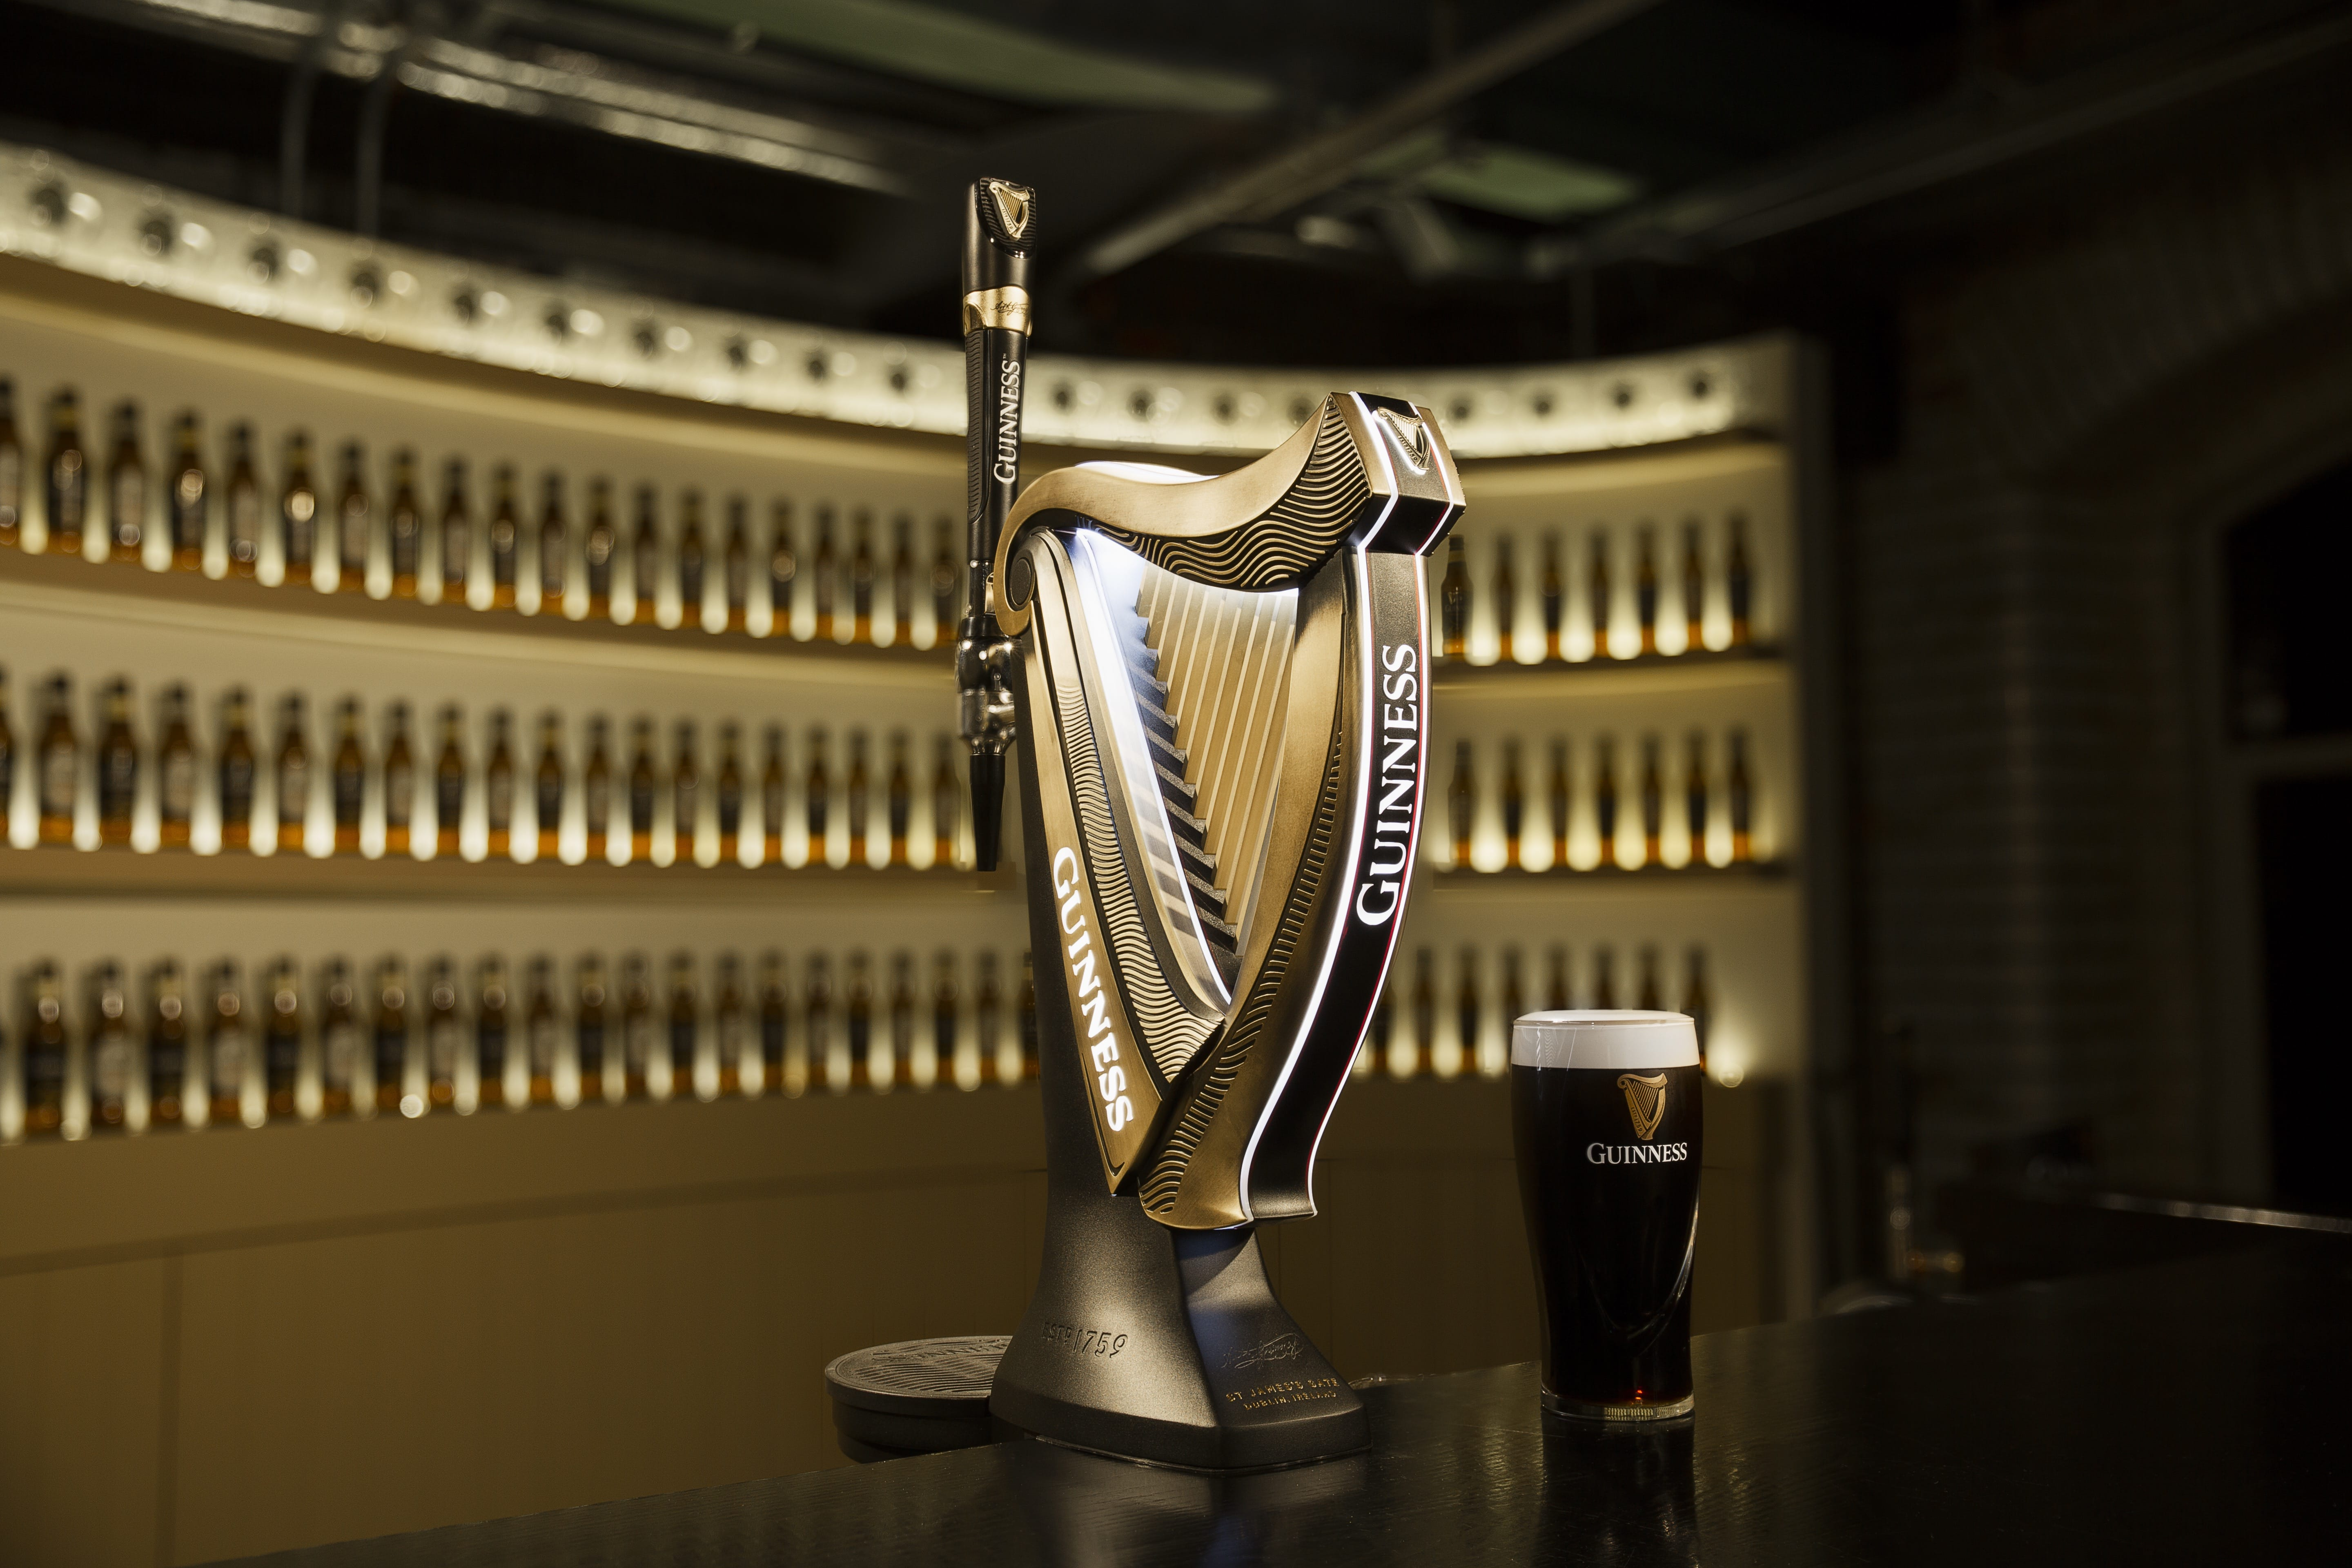 Guinness Hero Harps 2020 Grand Prix winner